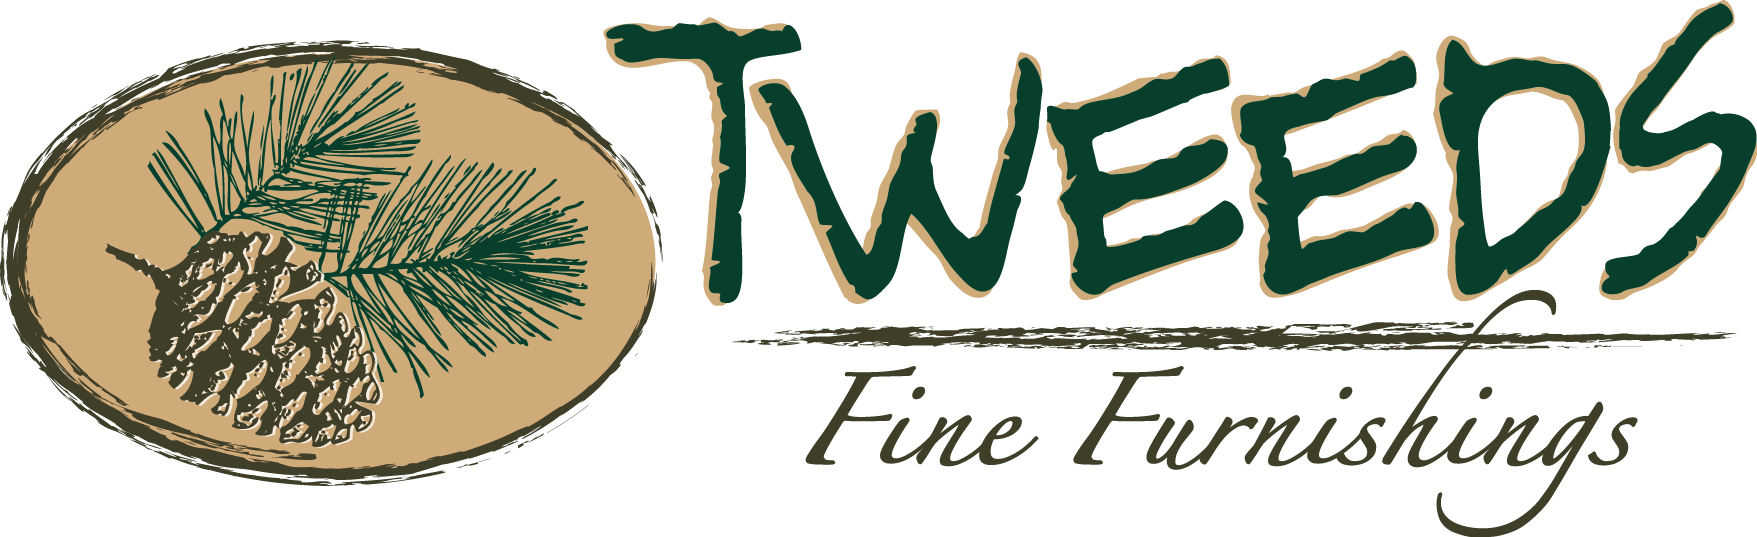 Tweeds Fine Furnishings Logo